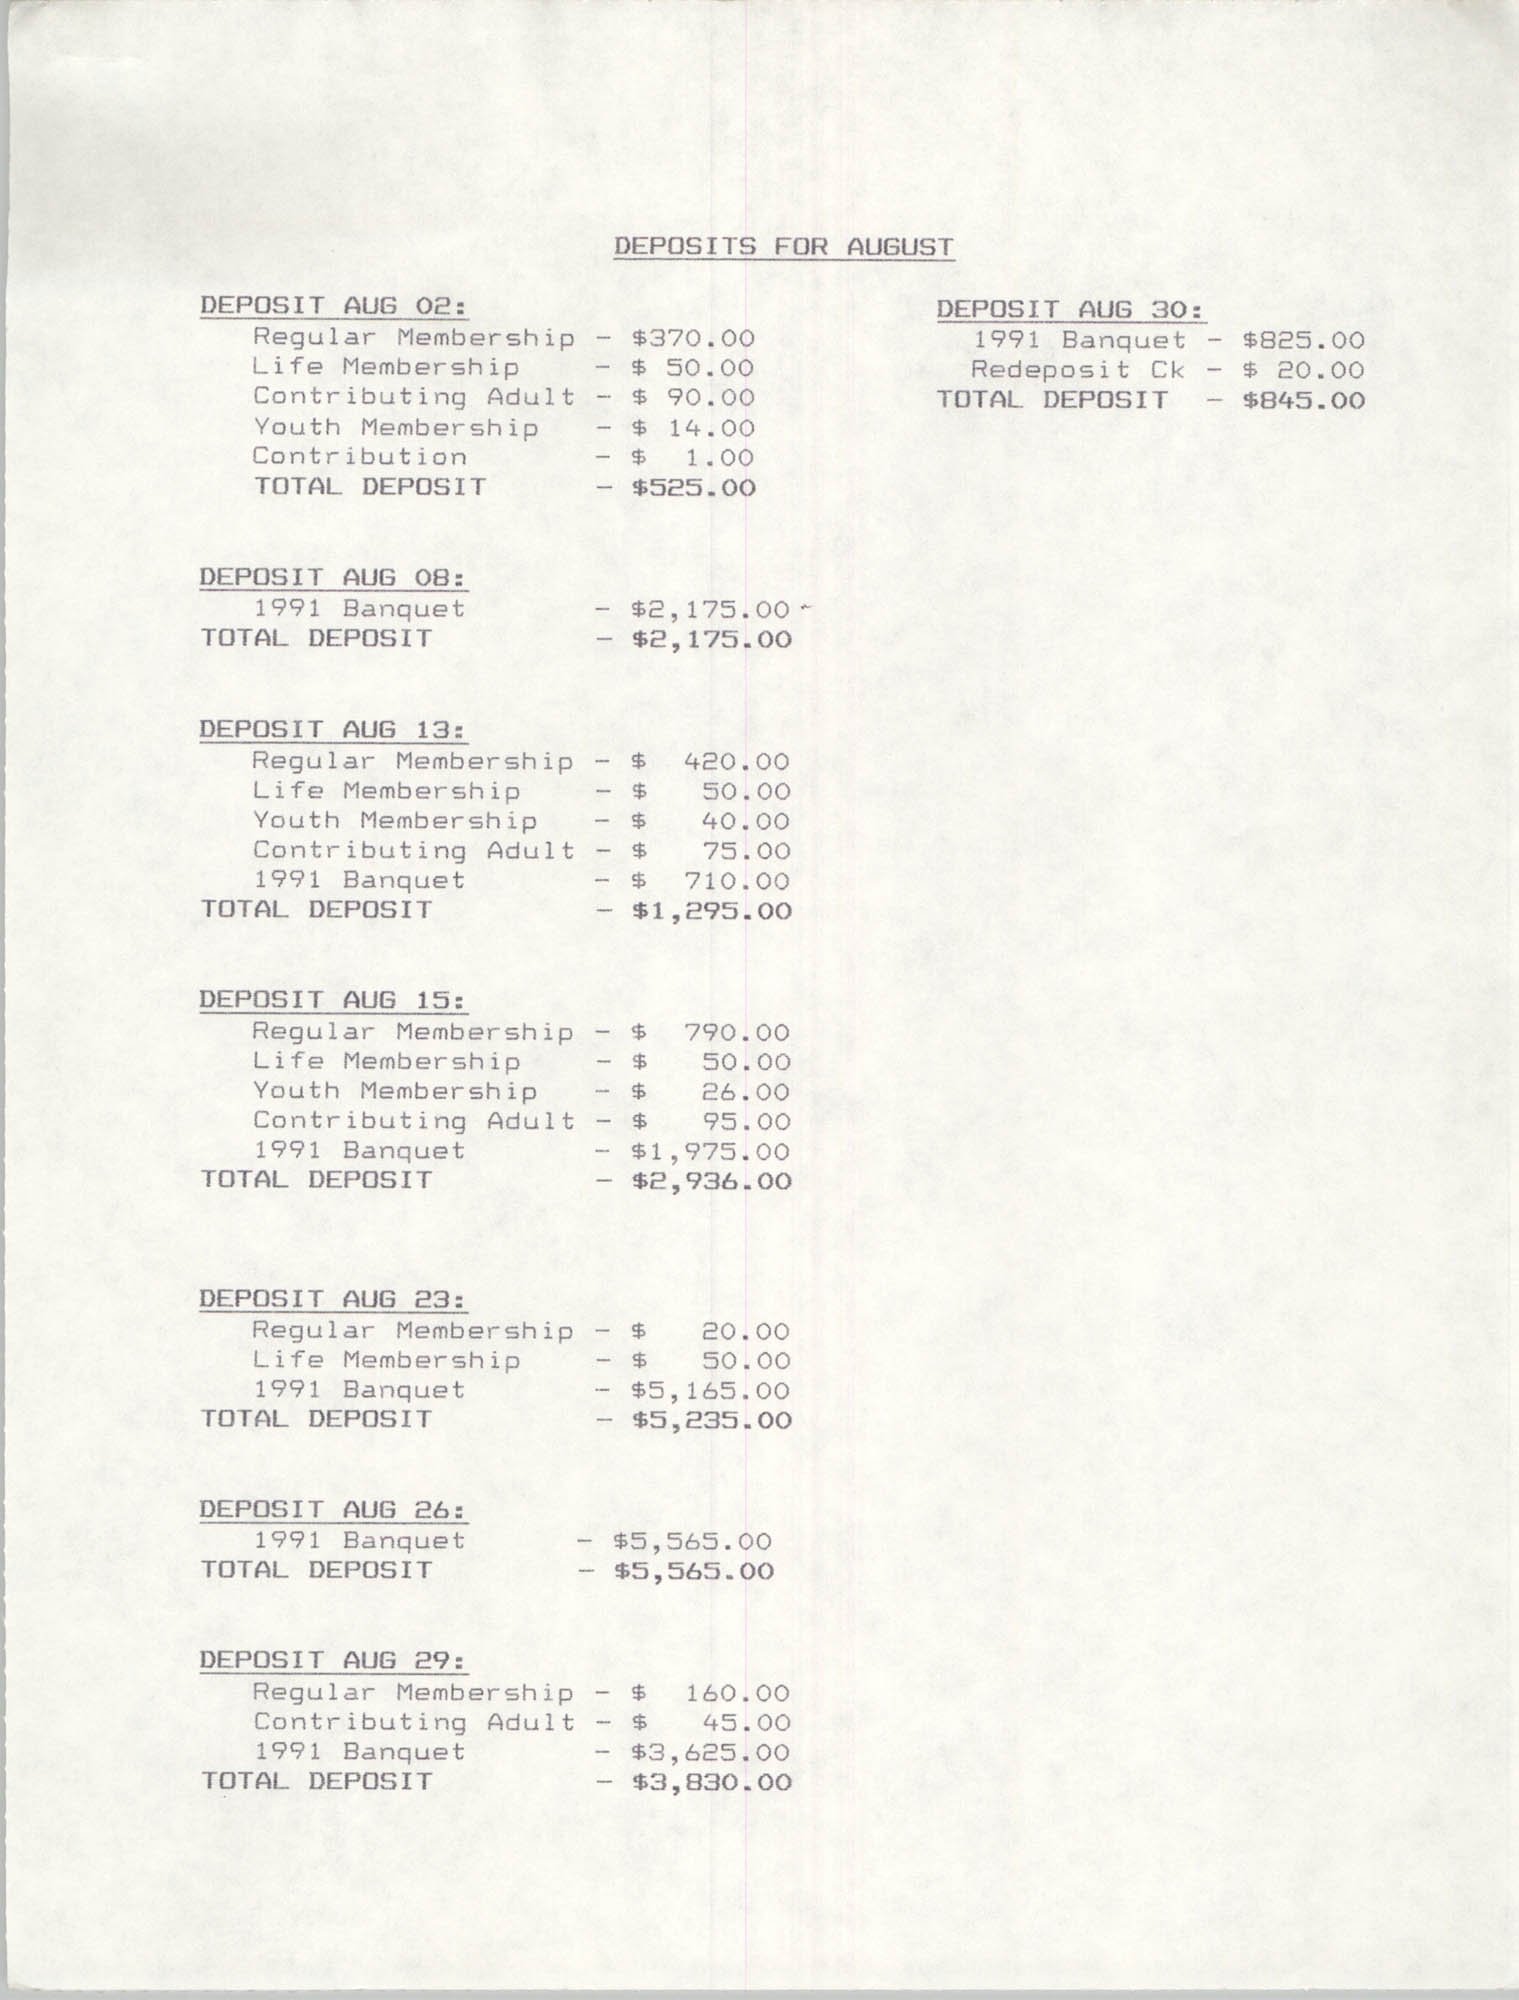 Charleston Branch of the NAACP Deposits for August 1991